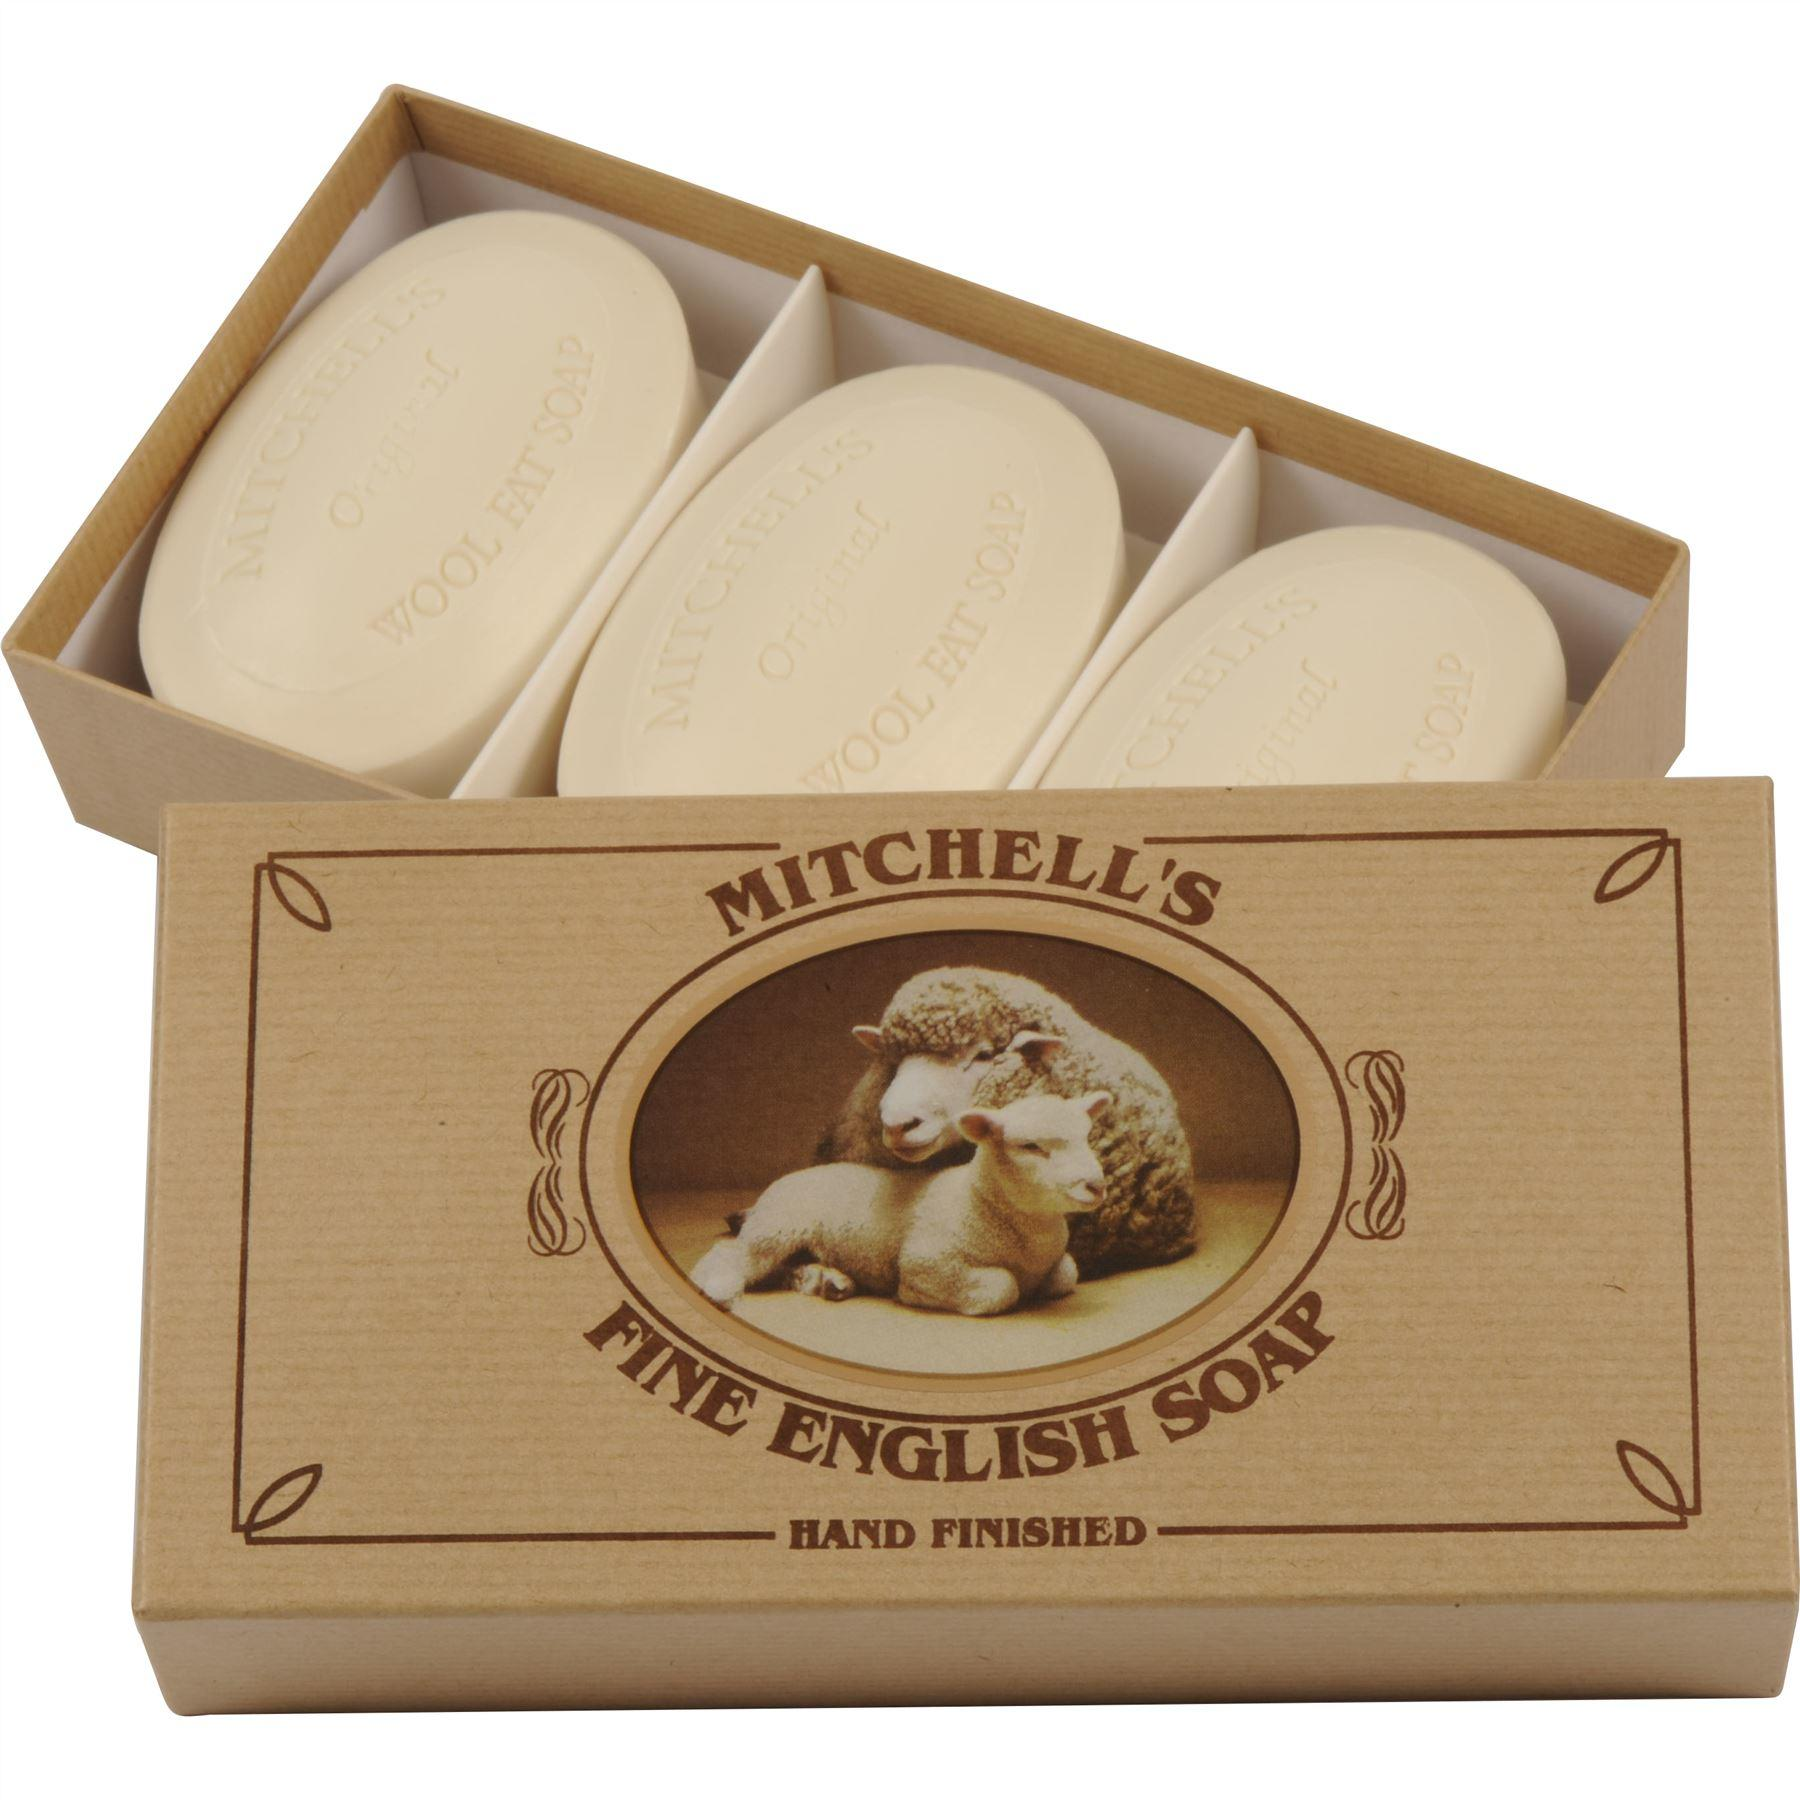 Mitchell's Wool Fat Lanolin Soap Bar Gift Set with Three Oval Soap Bars in a Kraft Brown Gift Box